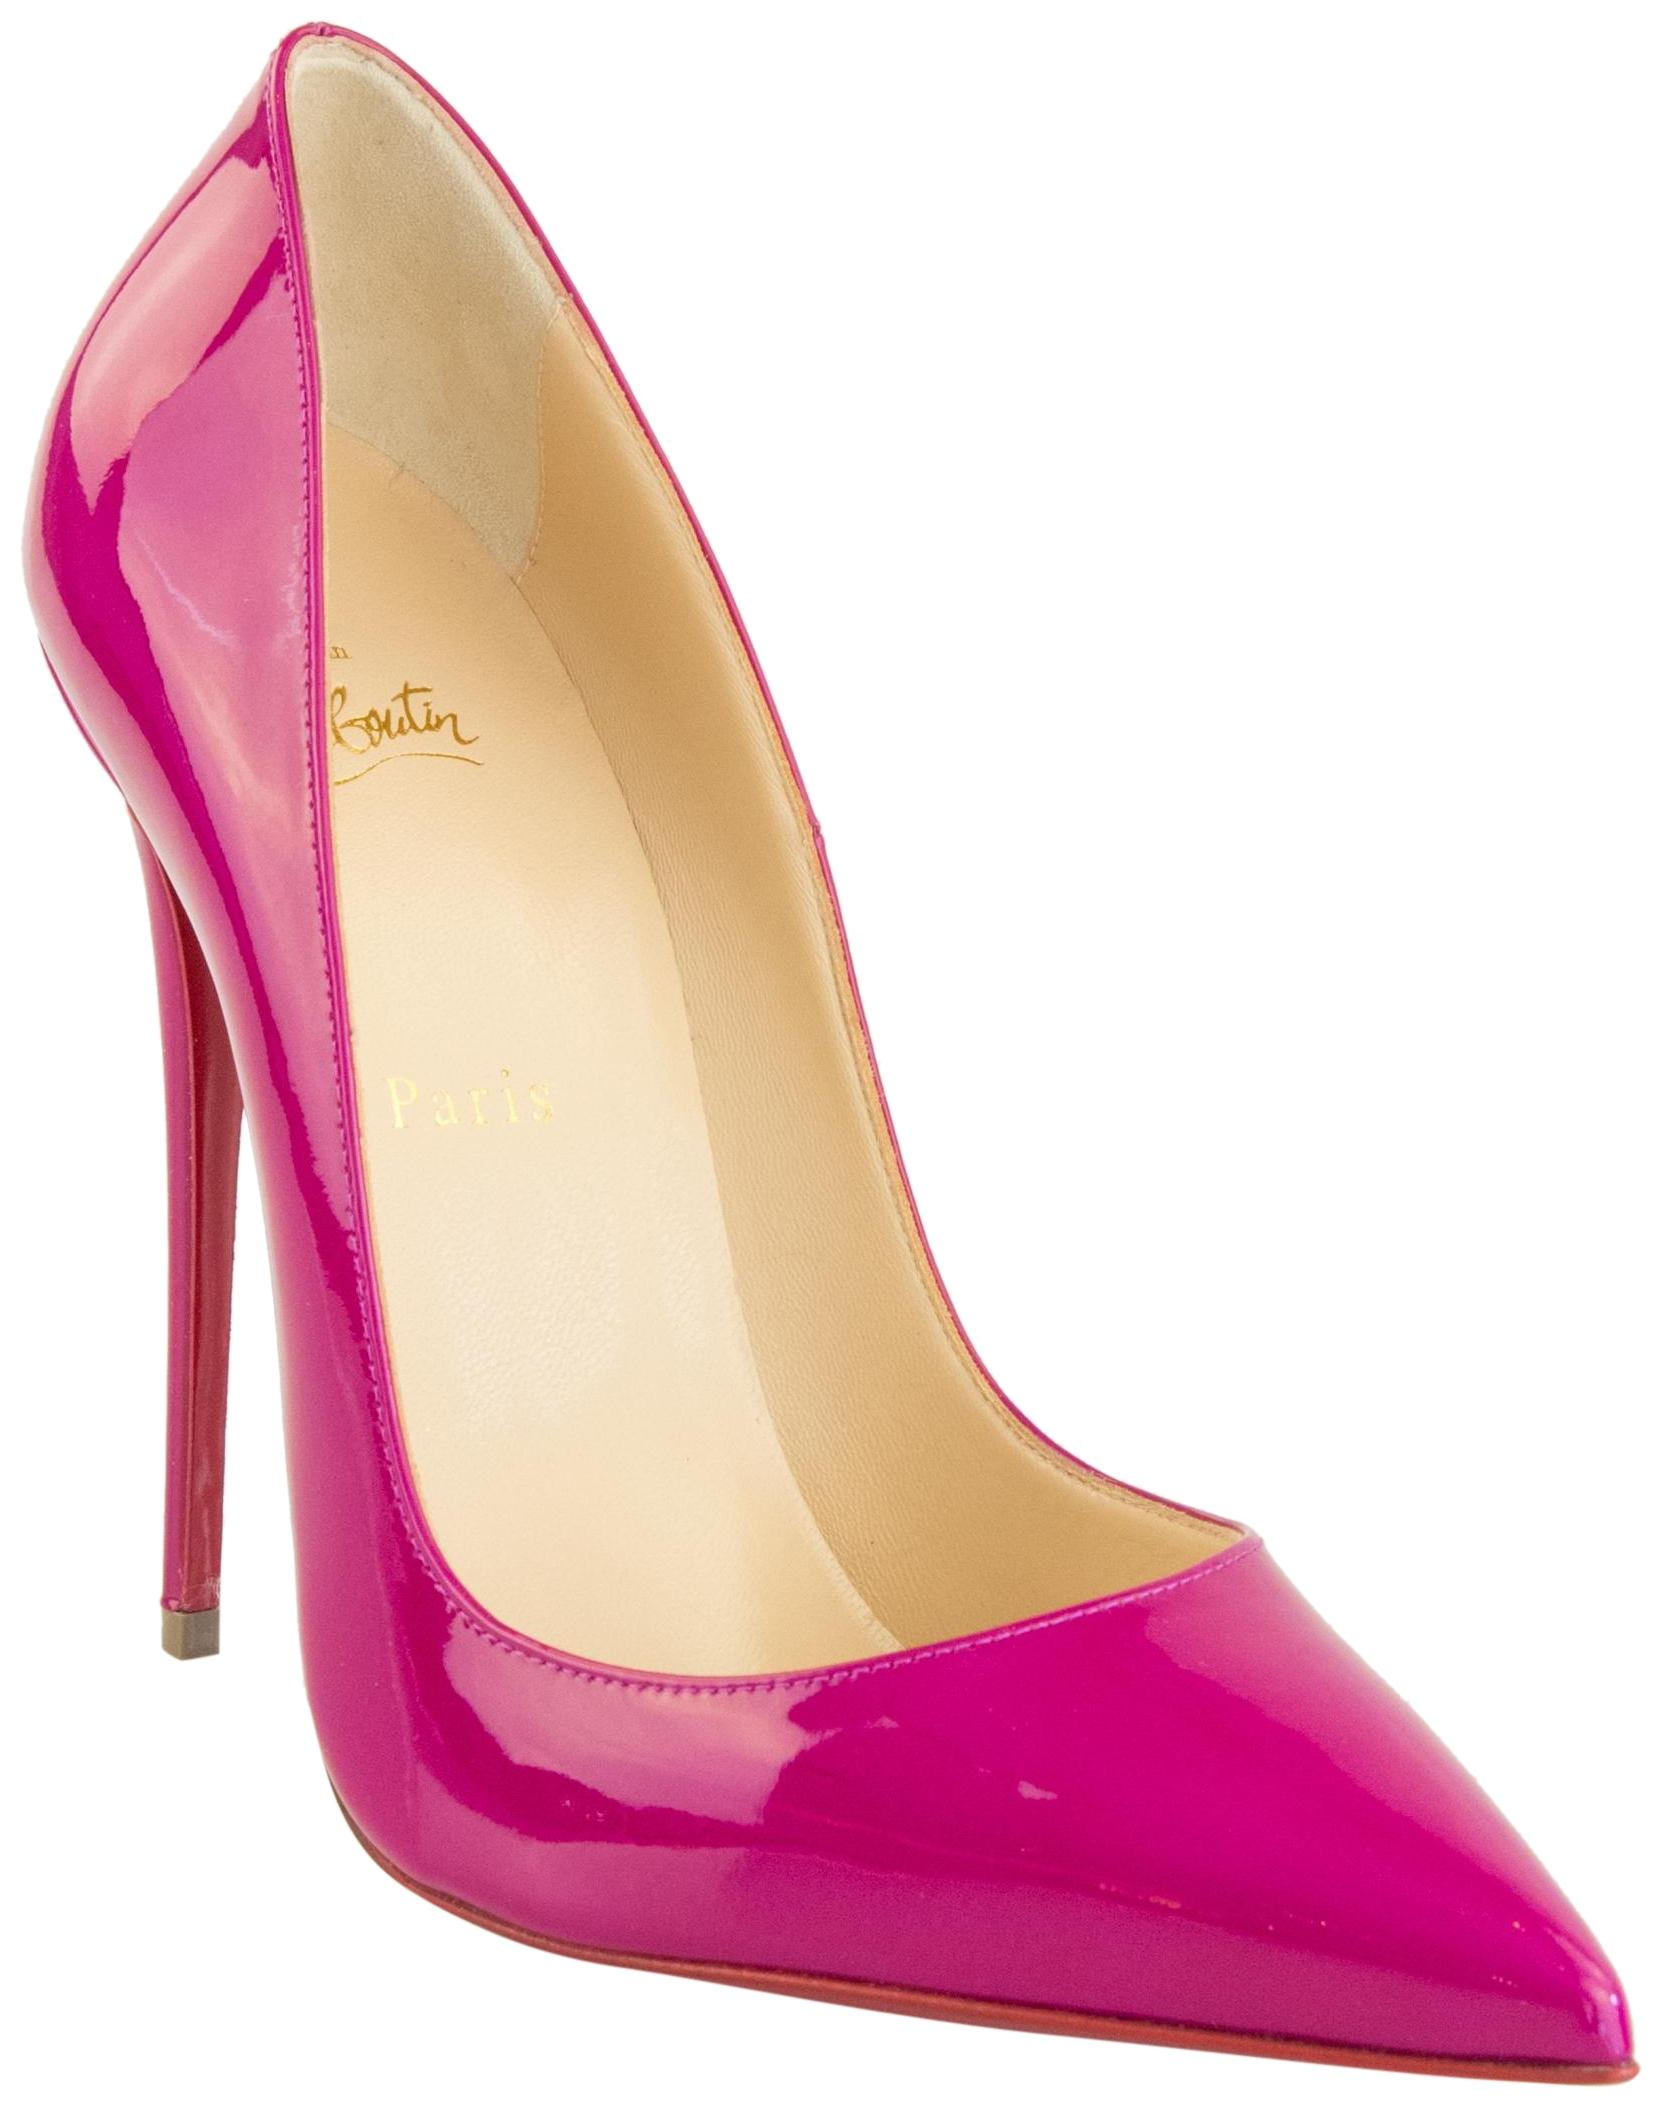 9b2737270c30 Man s Woman s   Christian Louboutin Ultra Rose So So So Kate 120 Patent  Pumps Size